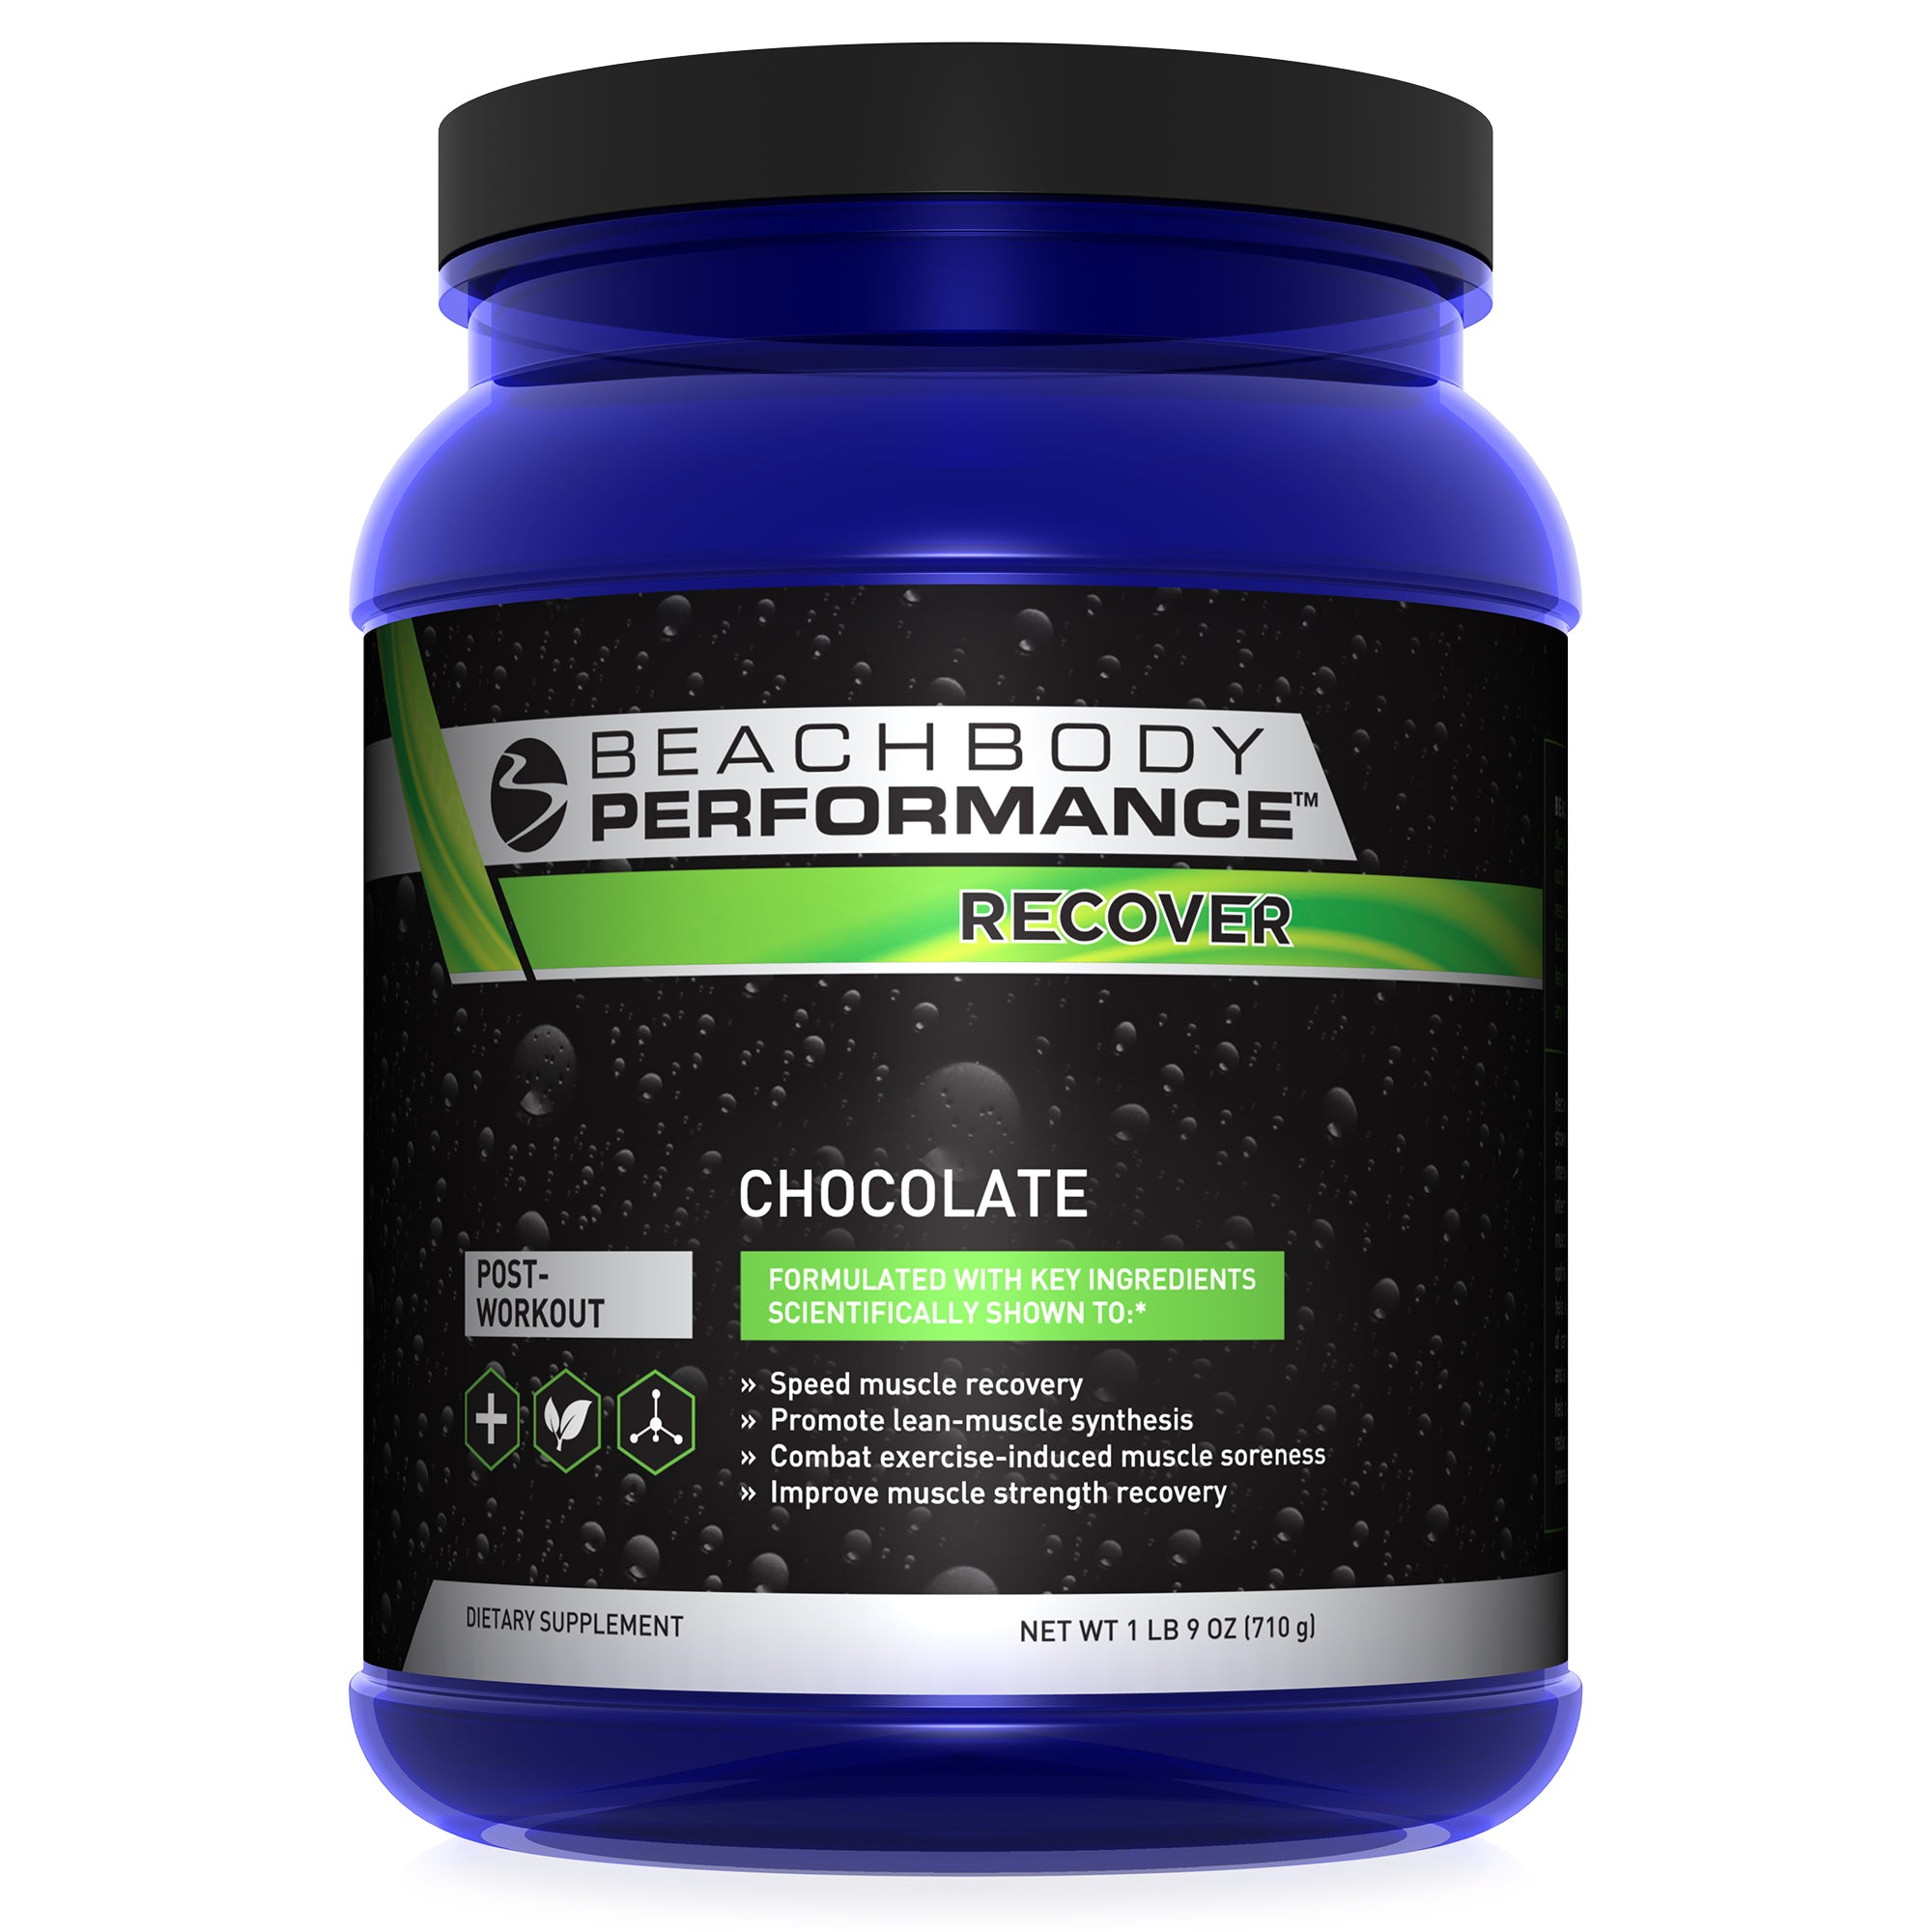 Beachbody Performance Line Chocolate Recover UK